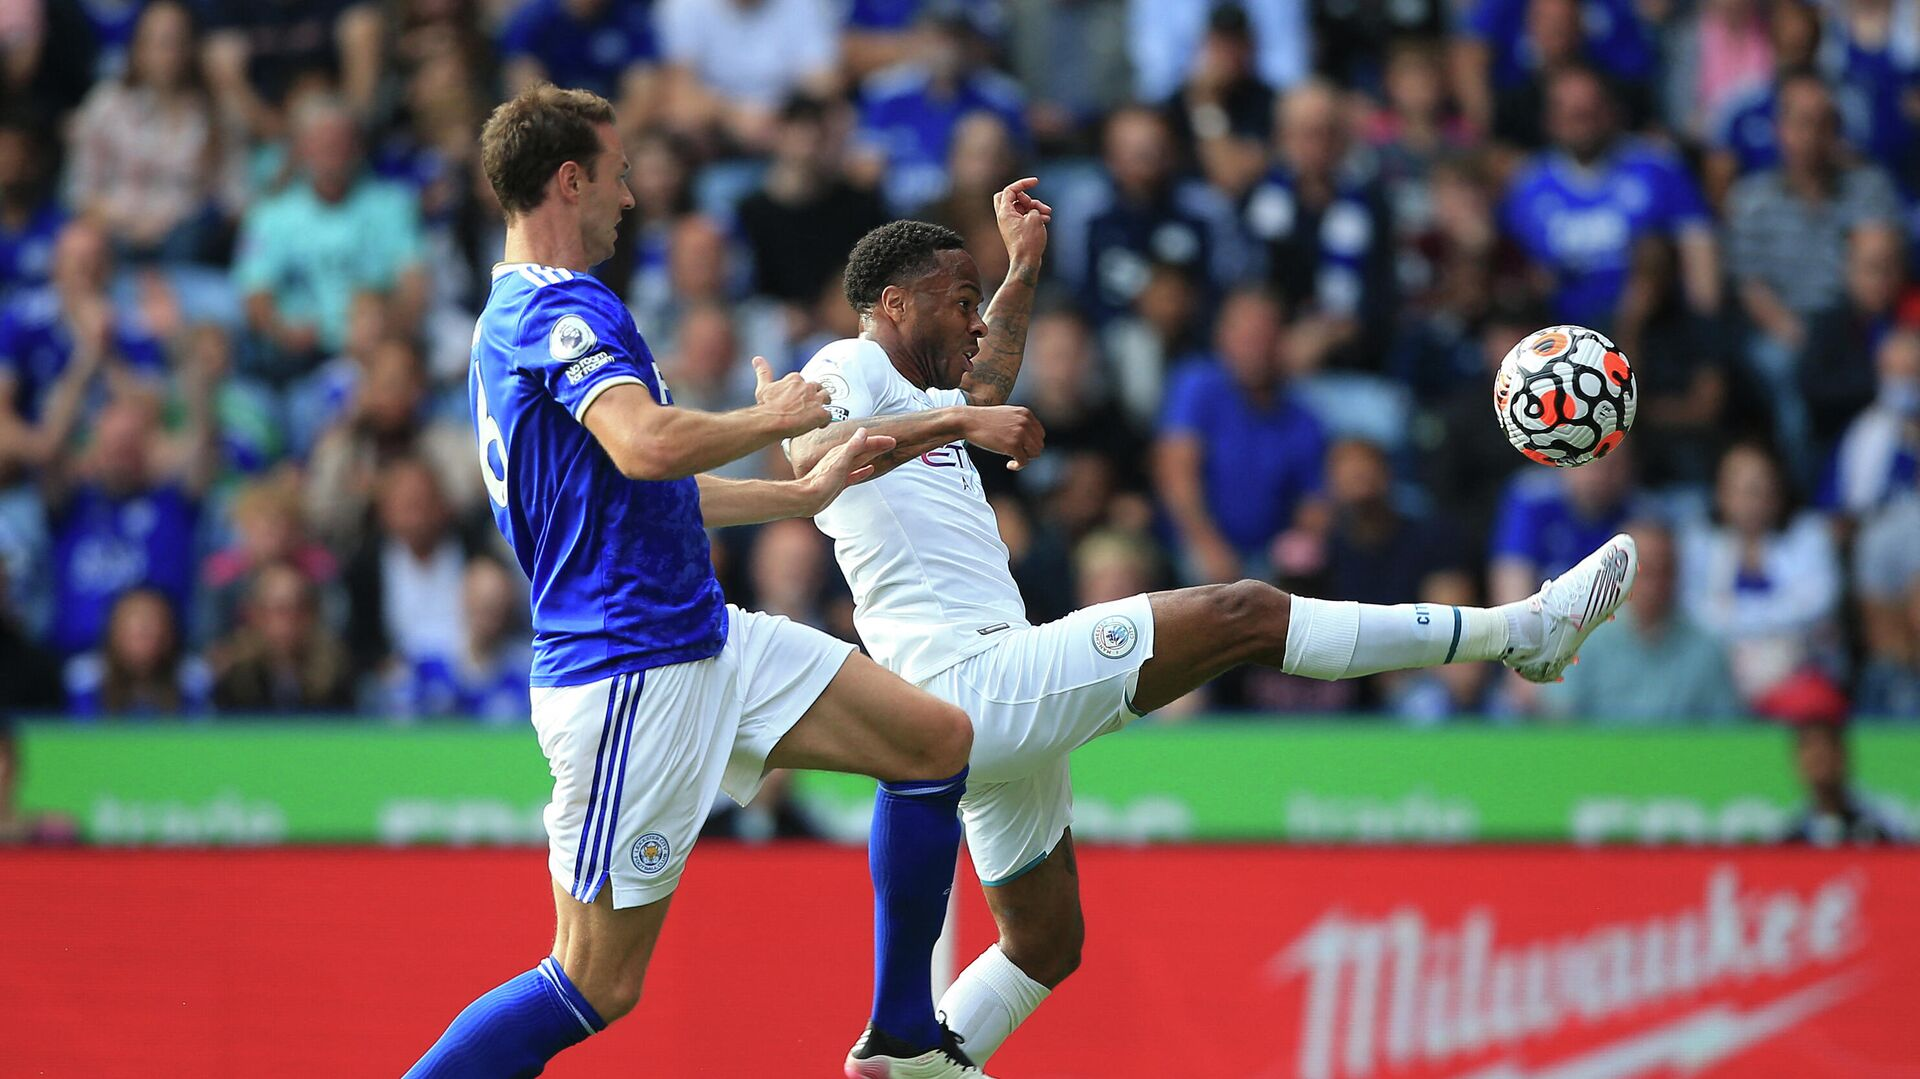 Leicester City's Northern Irish defender Jonny Evans (L) chases Manchester City's English midfielder Raheem Sterling during the English Premier League football match between Leicester City and Manchester City at King Power Stadium in Leicester, central England on September 11, 2021. (Photo by Lindsey Parnaby / AFP) / RESTRICTED TO EDITORIAL USE. No use with unauthorized audio, video, data, fixture lists, club/league logos or 'live' services. Online in-match use limited to 120 images. An additional 40 images may be used in extra time. No video emulation. Social media in-match use limited to 120 images. An additional 40 images may be used in extra time. No use in betting publications, games or single club/league/player publications. /  - РИА Новости, 1920, 11.09.2021